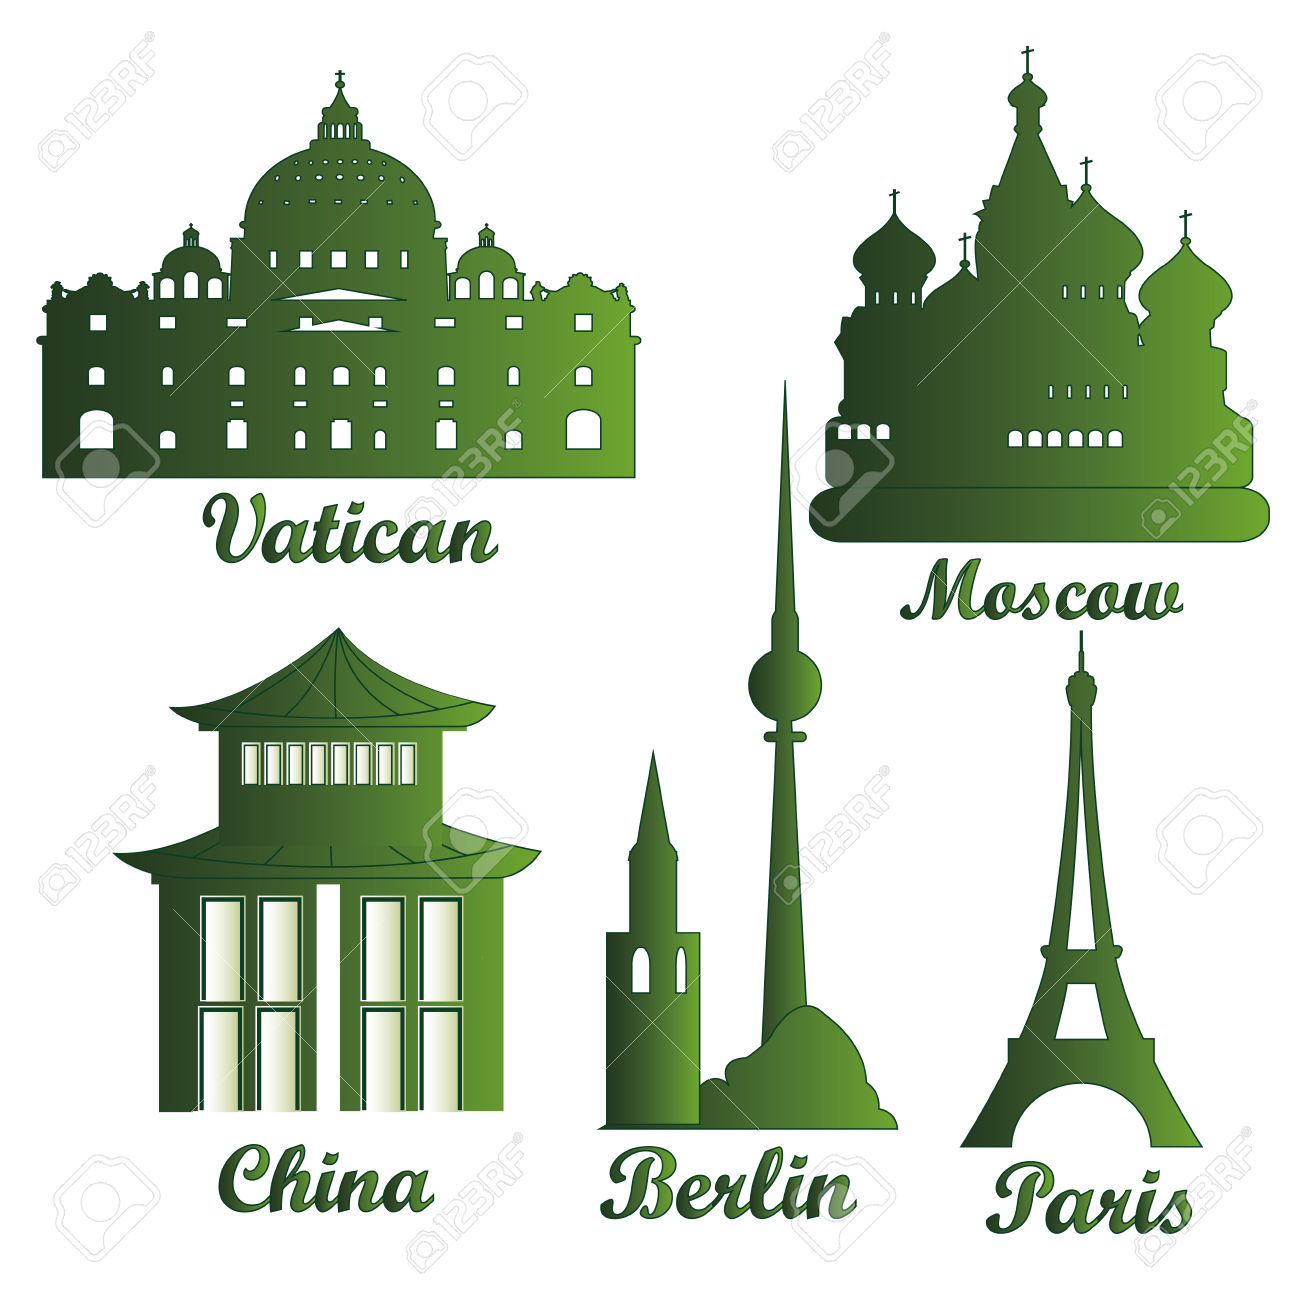 Some Green Silhouettes Of Famous Buildings Around The World.